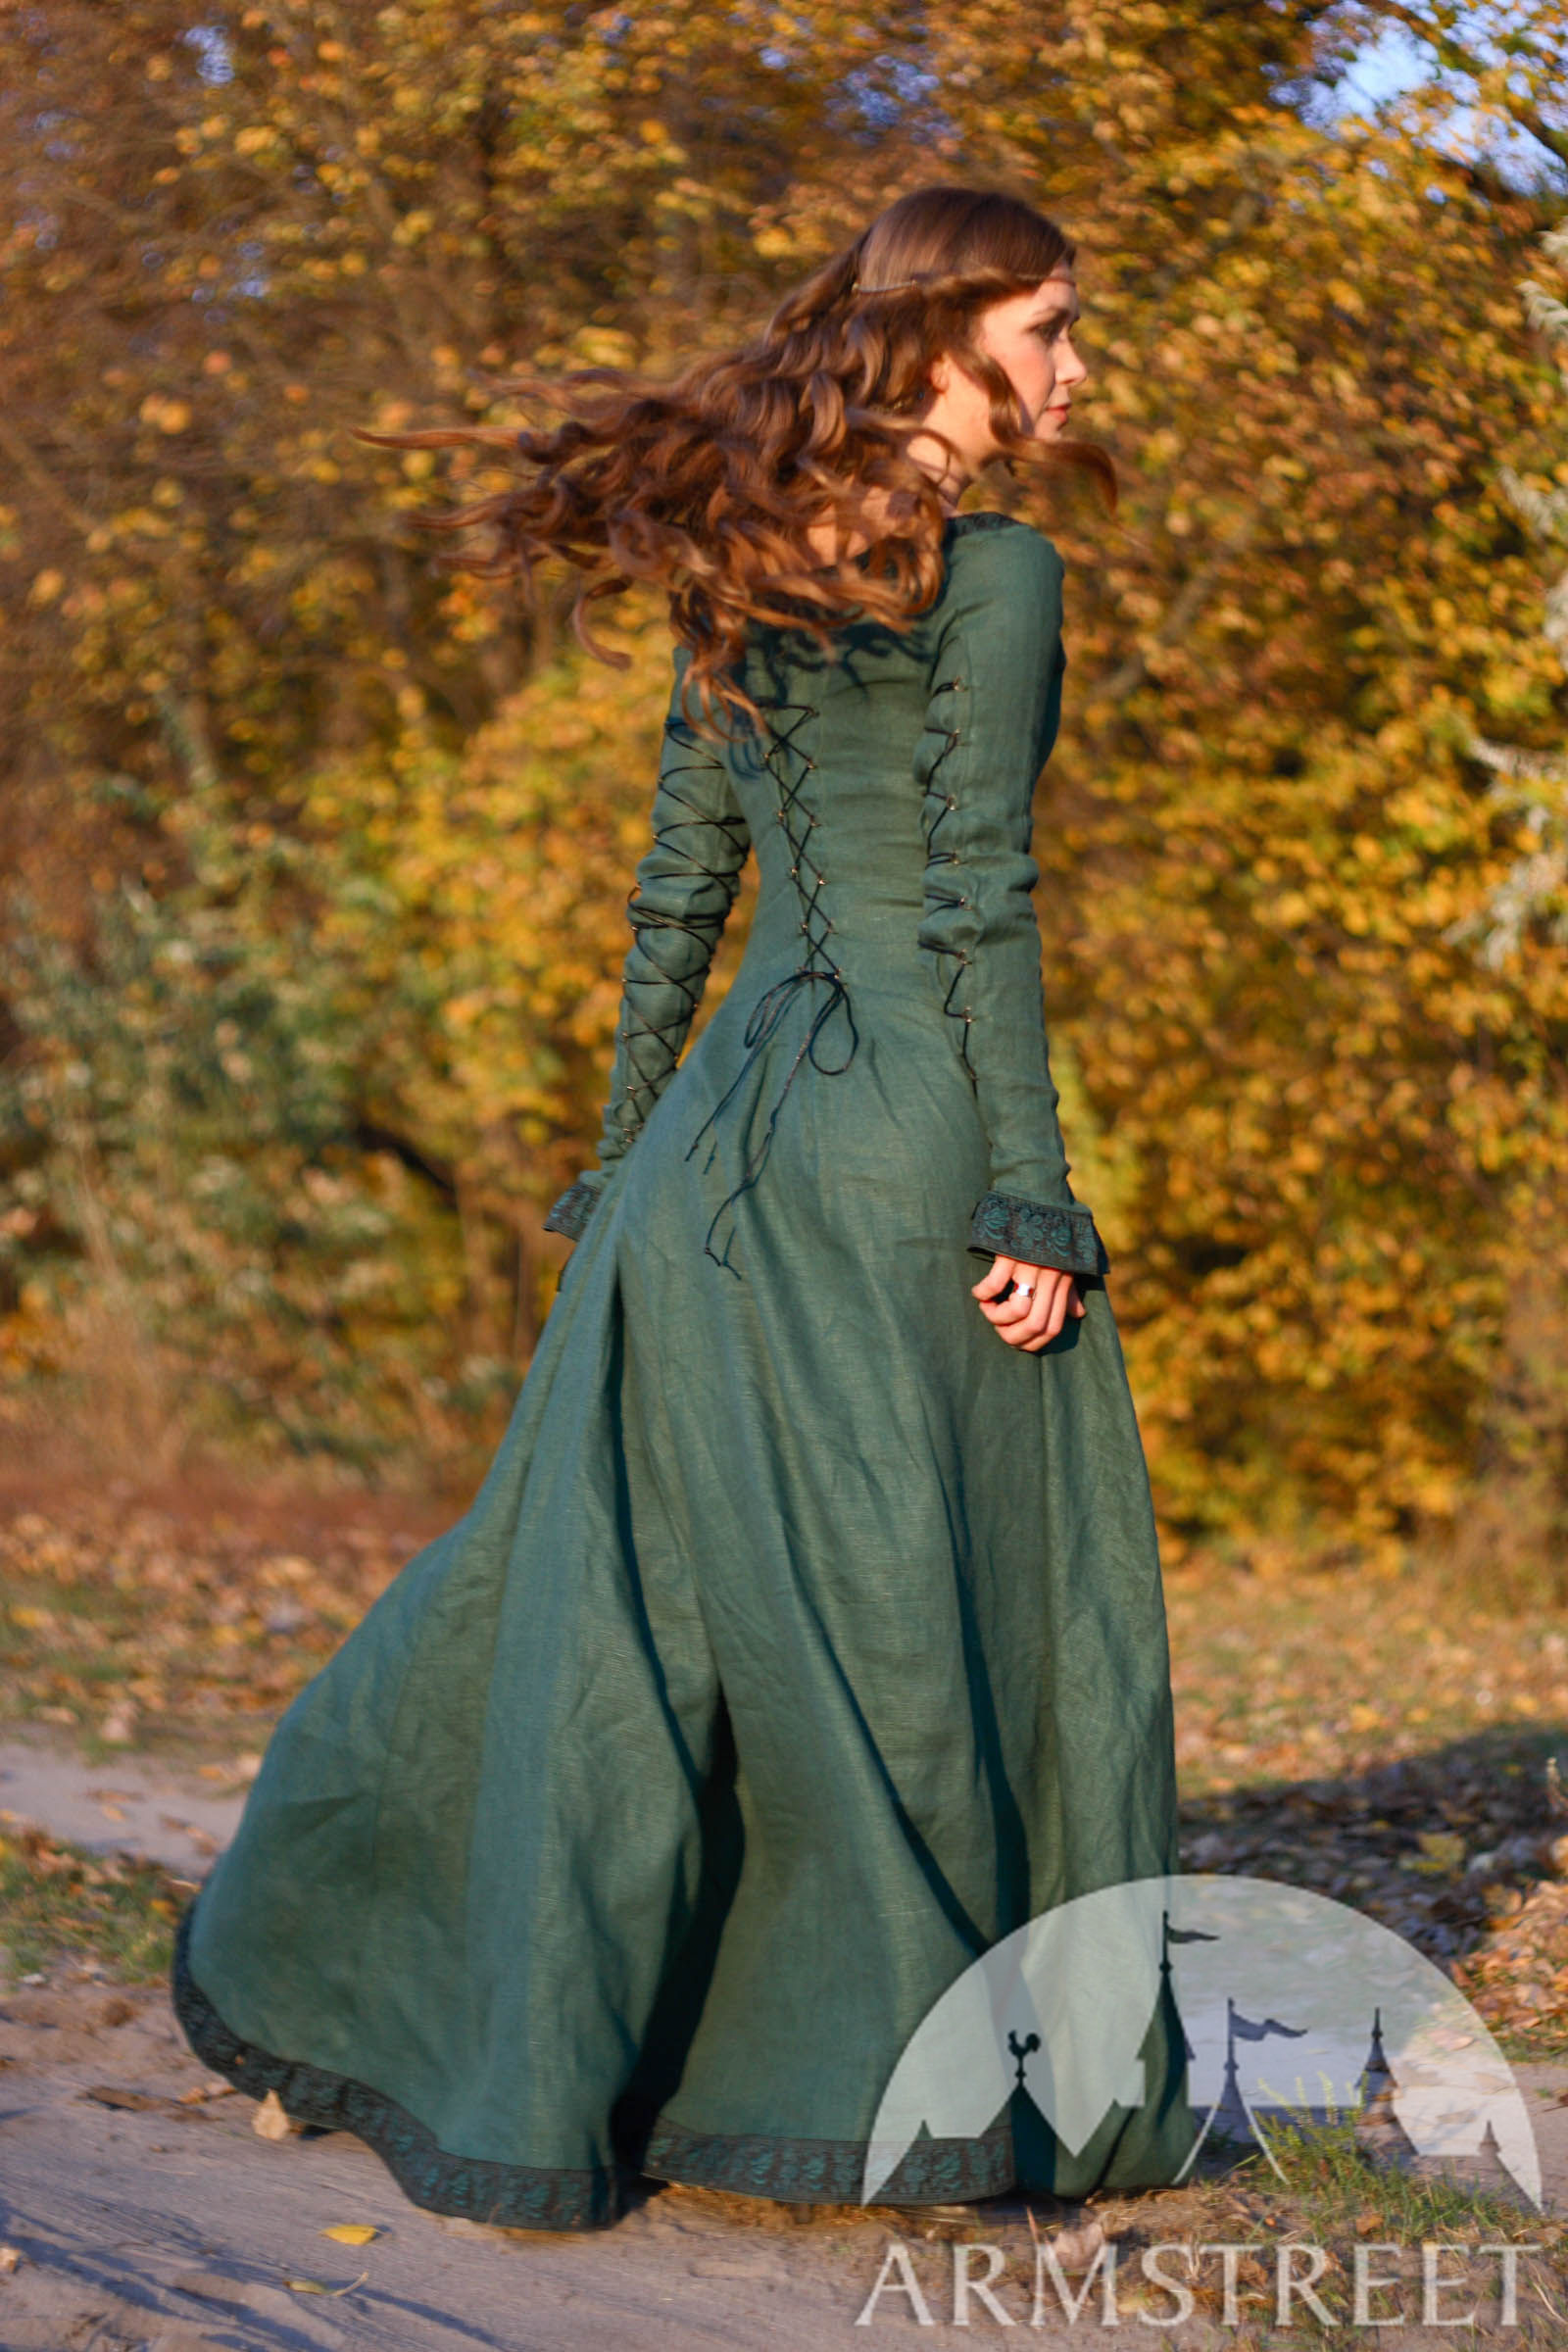 Medieval Natural Flax Lined Dress With Surcoat And